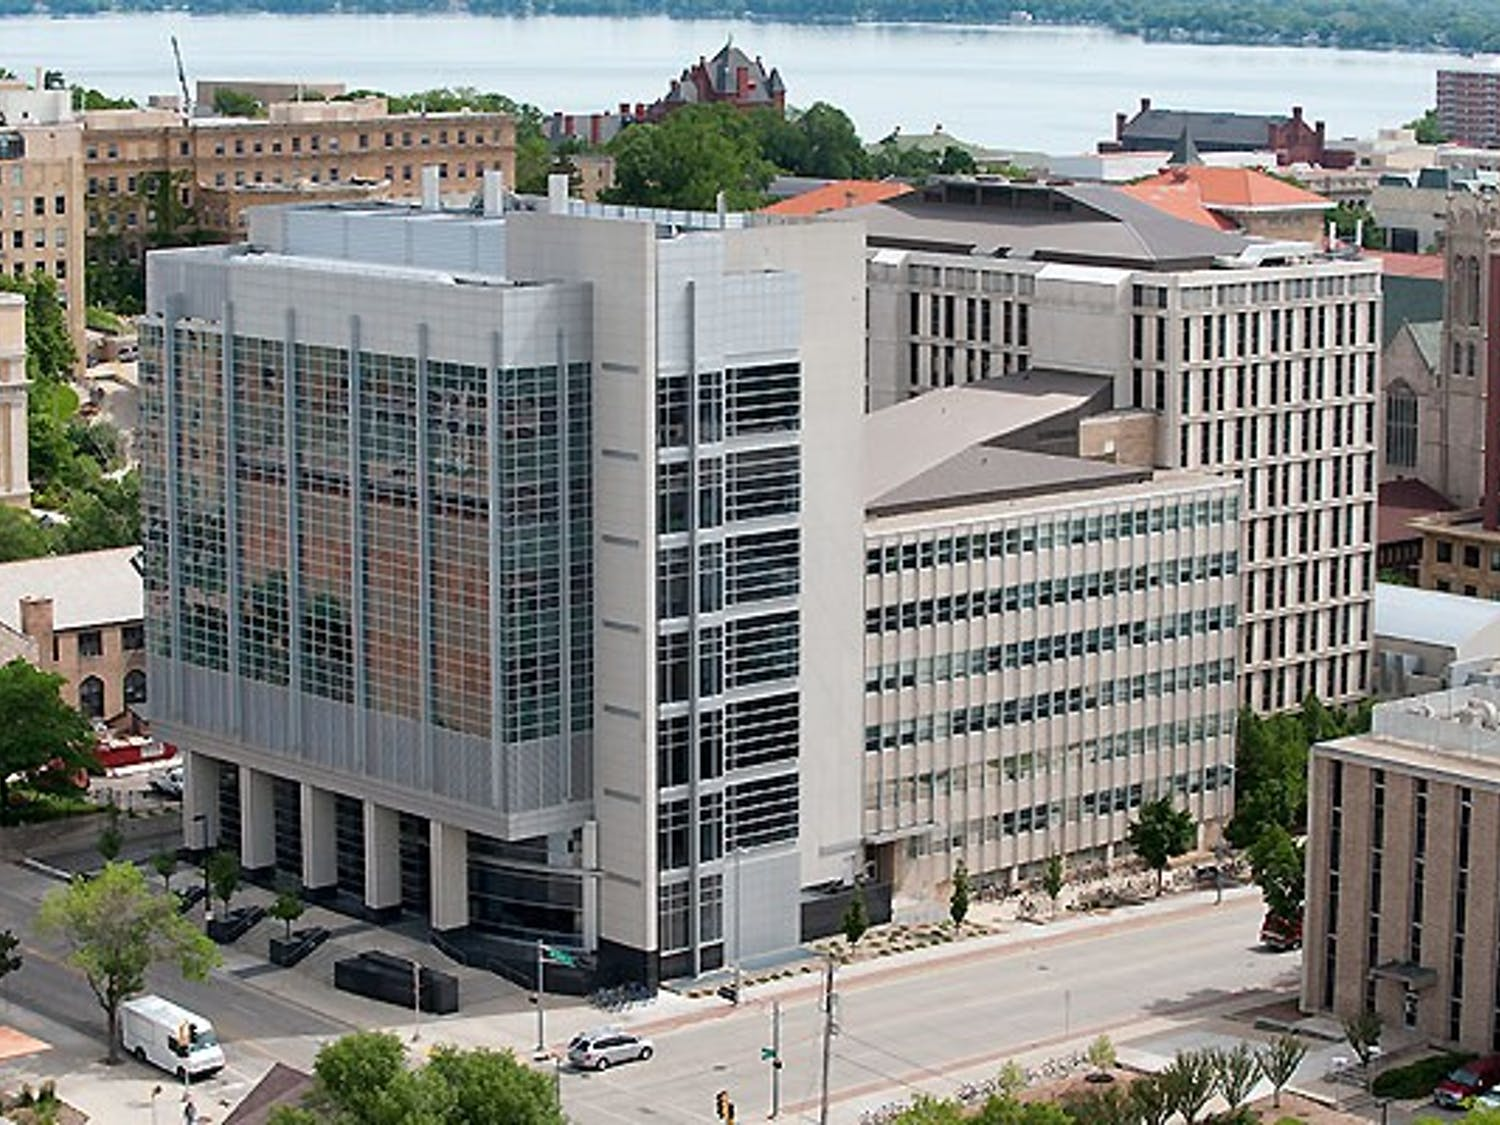 The Chemistry Building at the University of Wisconsin-Madison is pictured on June 10, 2010. The view, which includes Lake Mendota in the background, is from the roof of the Atmospheric, Oceanic and Space Science Building.